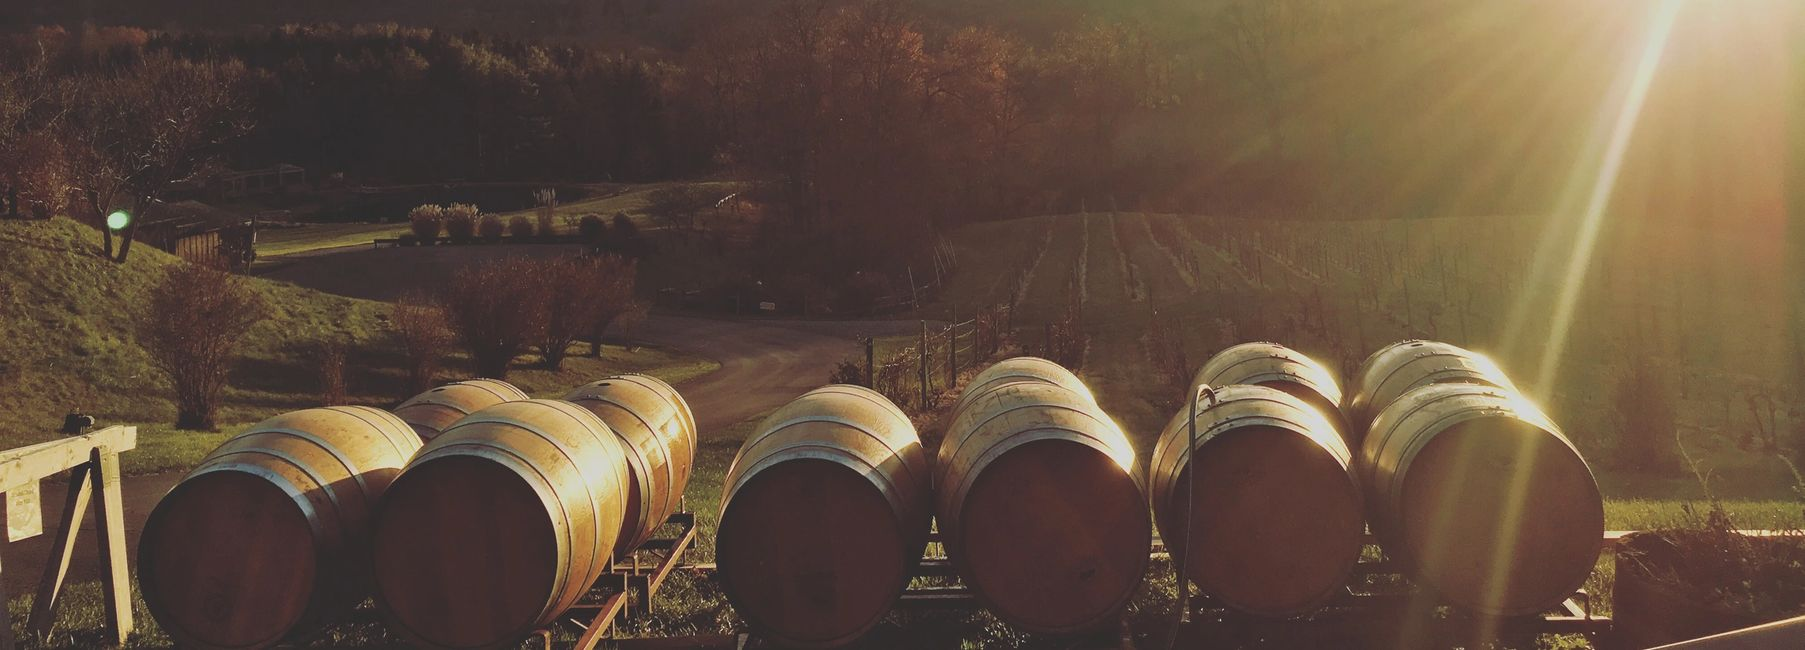 Picture of barrels with sunsetting behind them